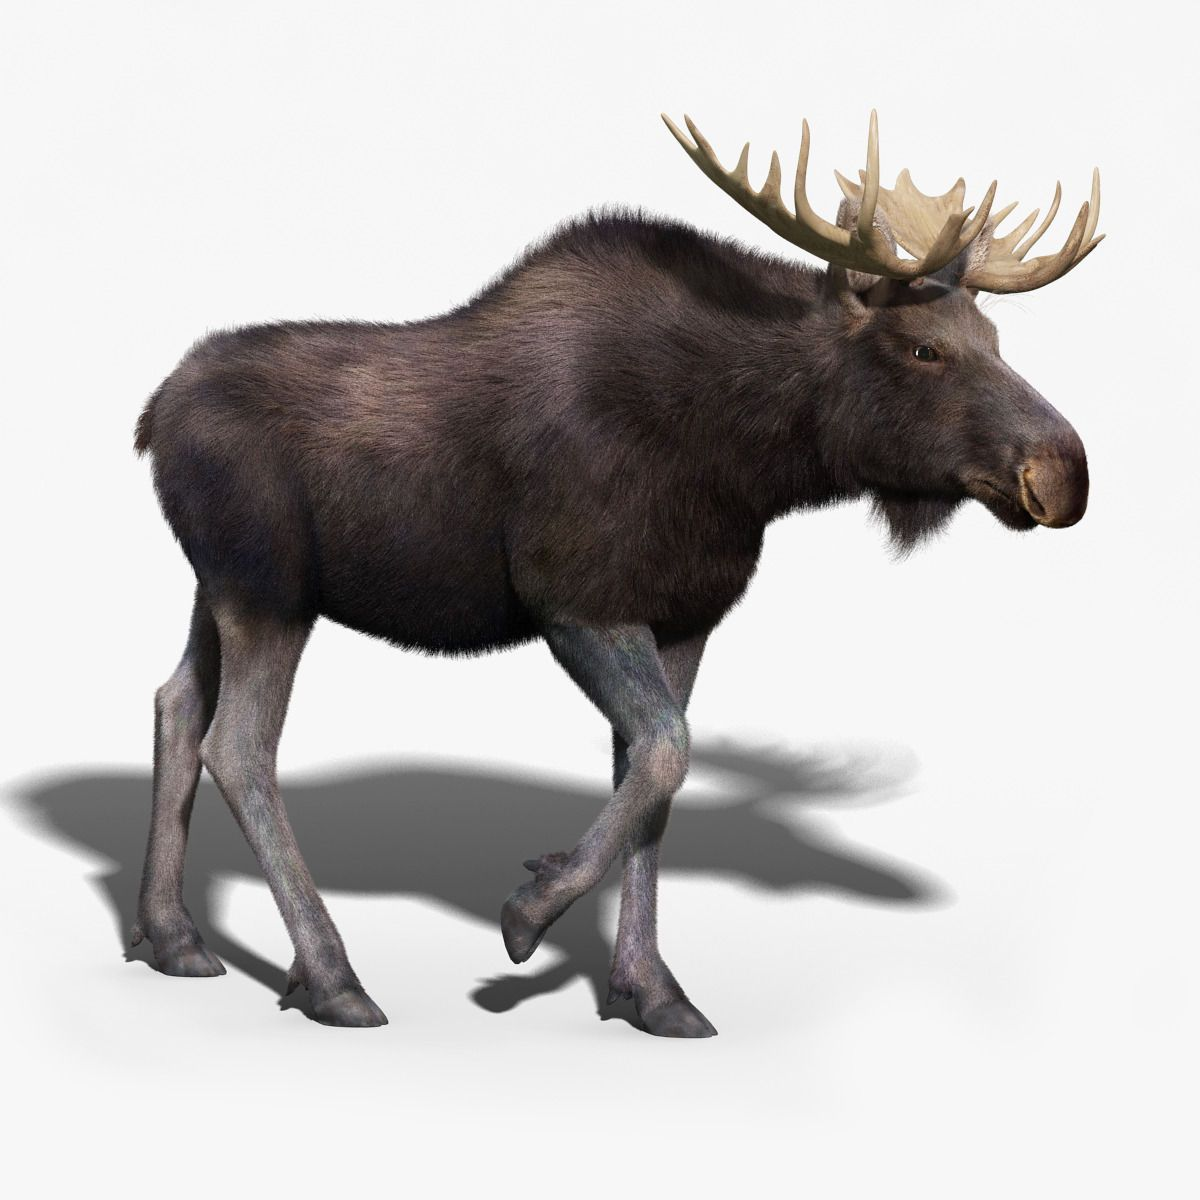 Moose FUR RIGGED by cgmobile. High Detailed Photorealistic